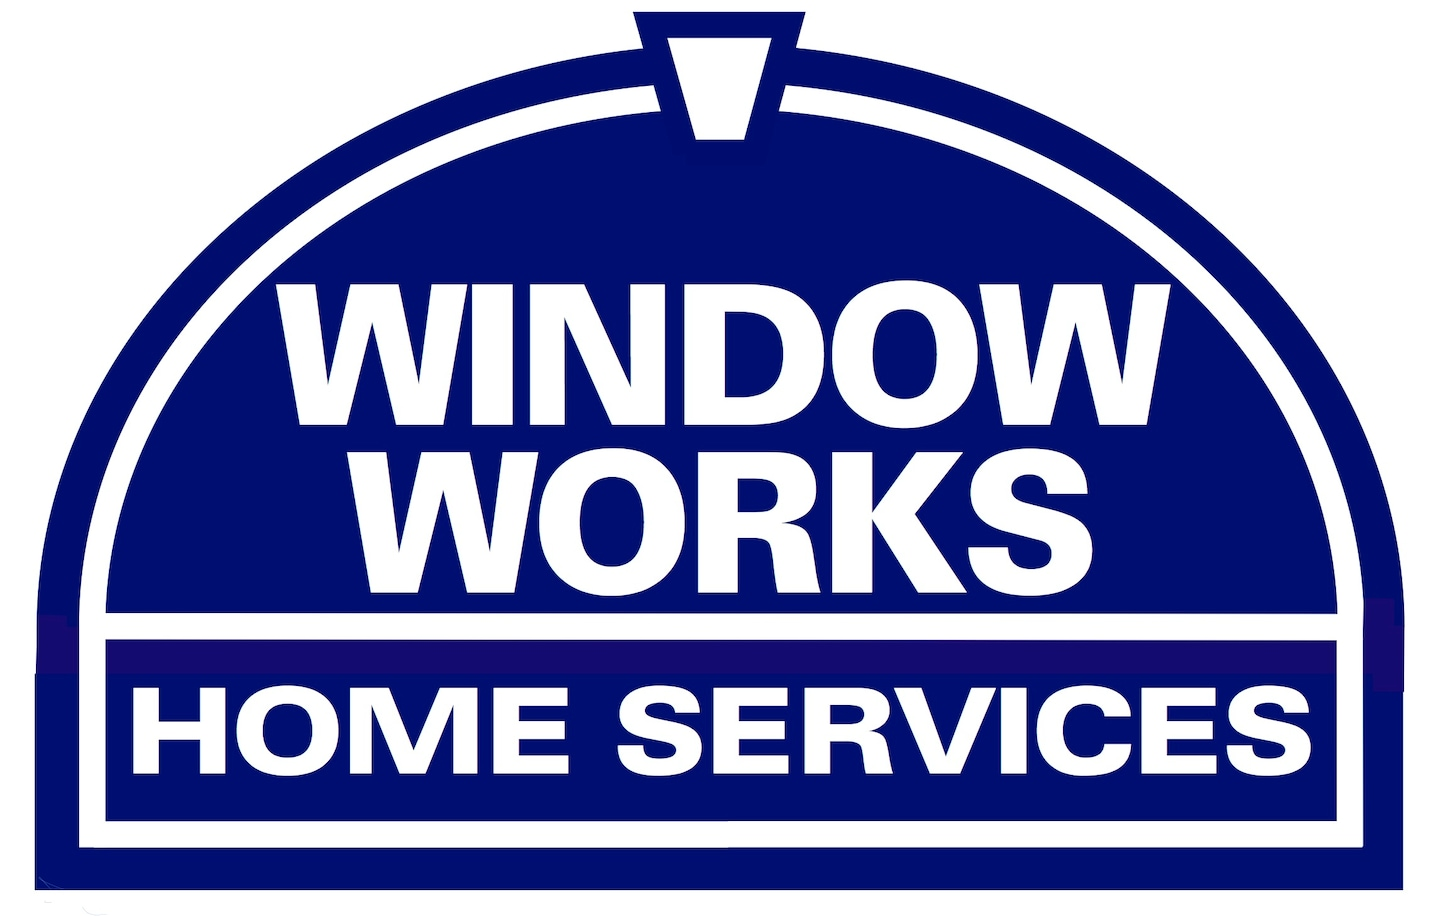 Window Works Home Services LLC